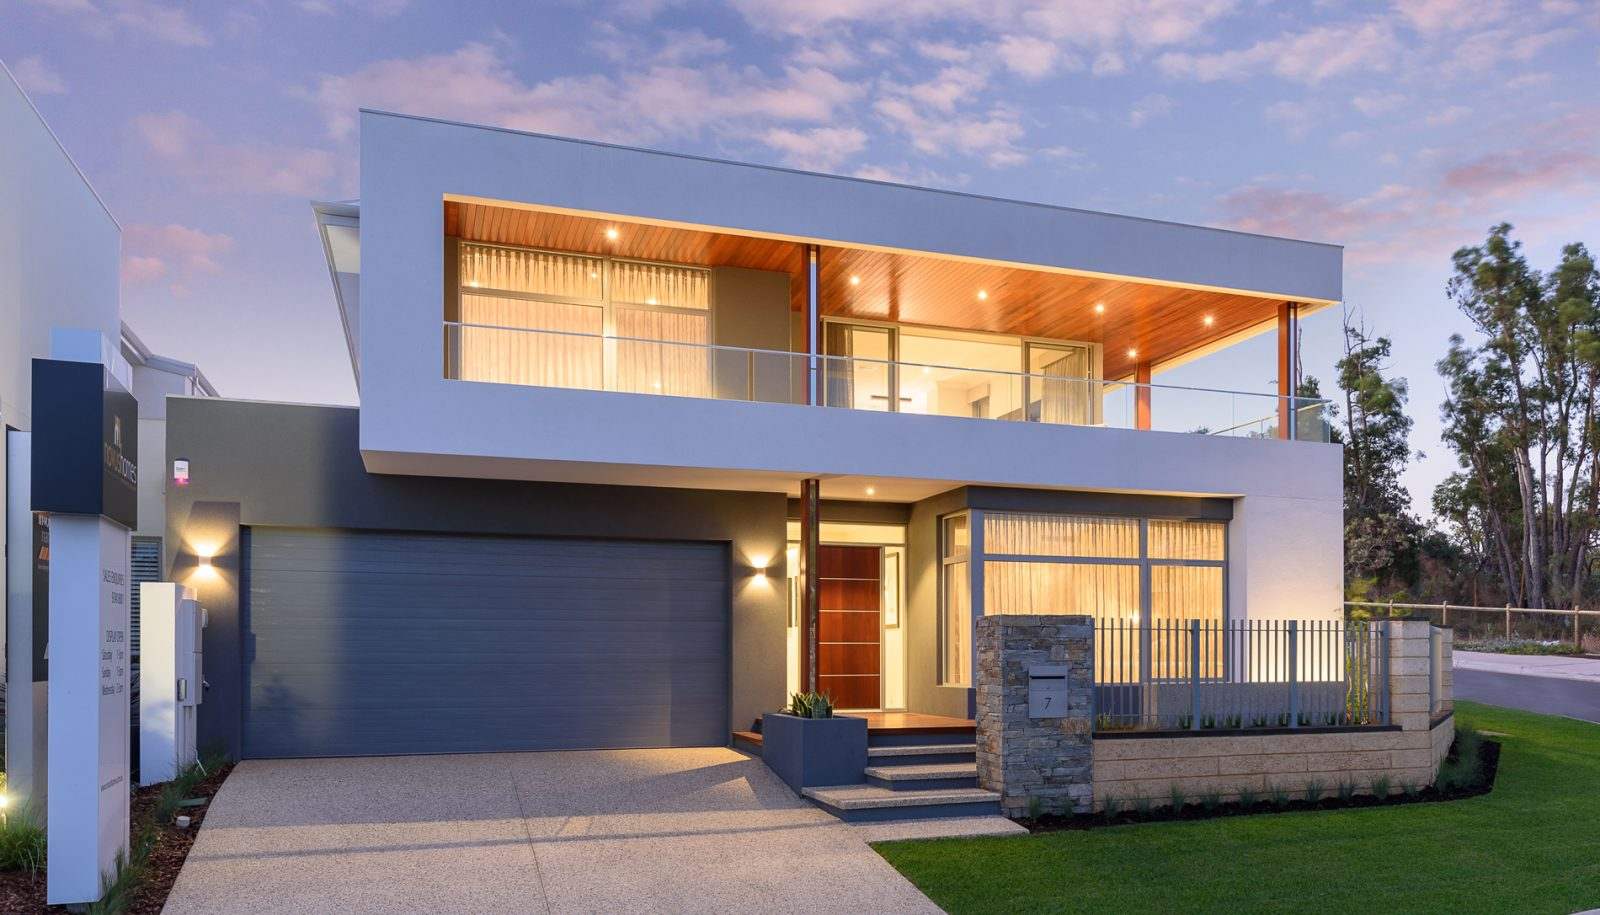 Blue Sectional Garage Door in Perth Home